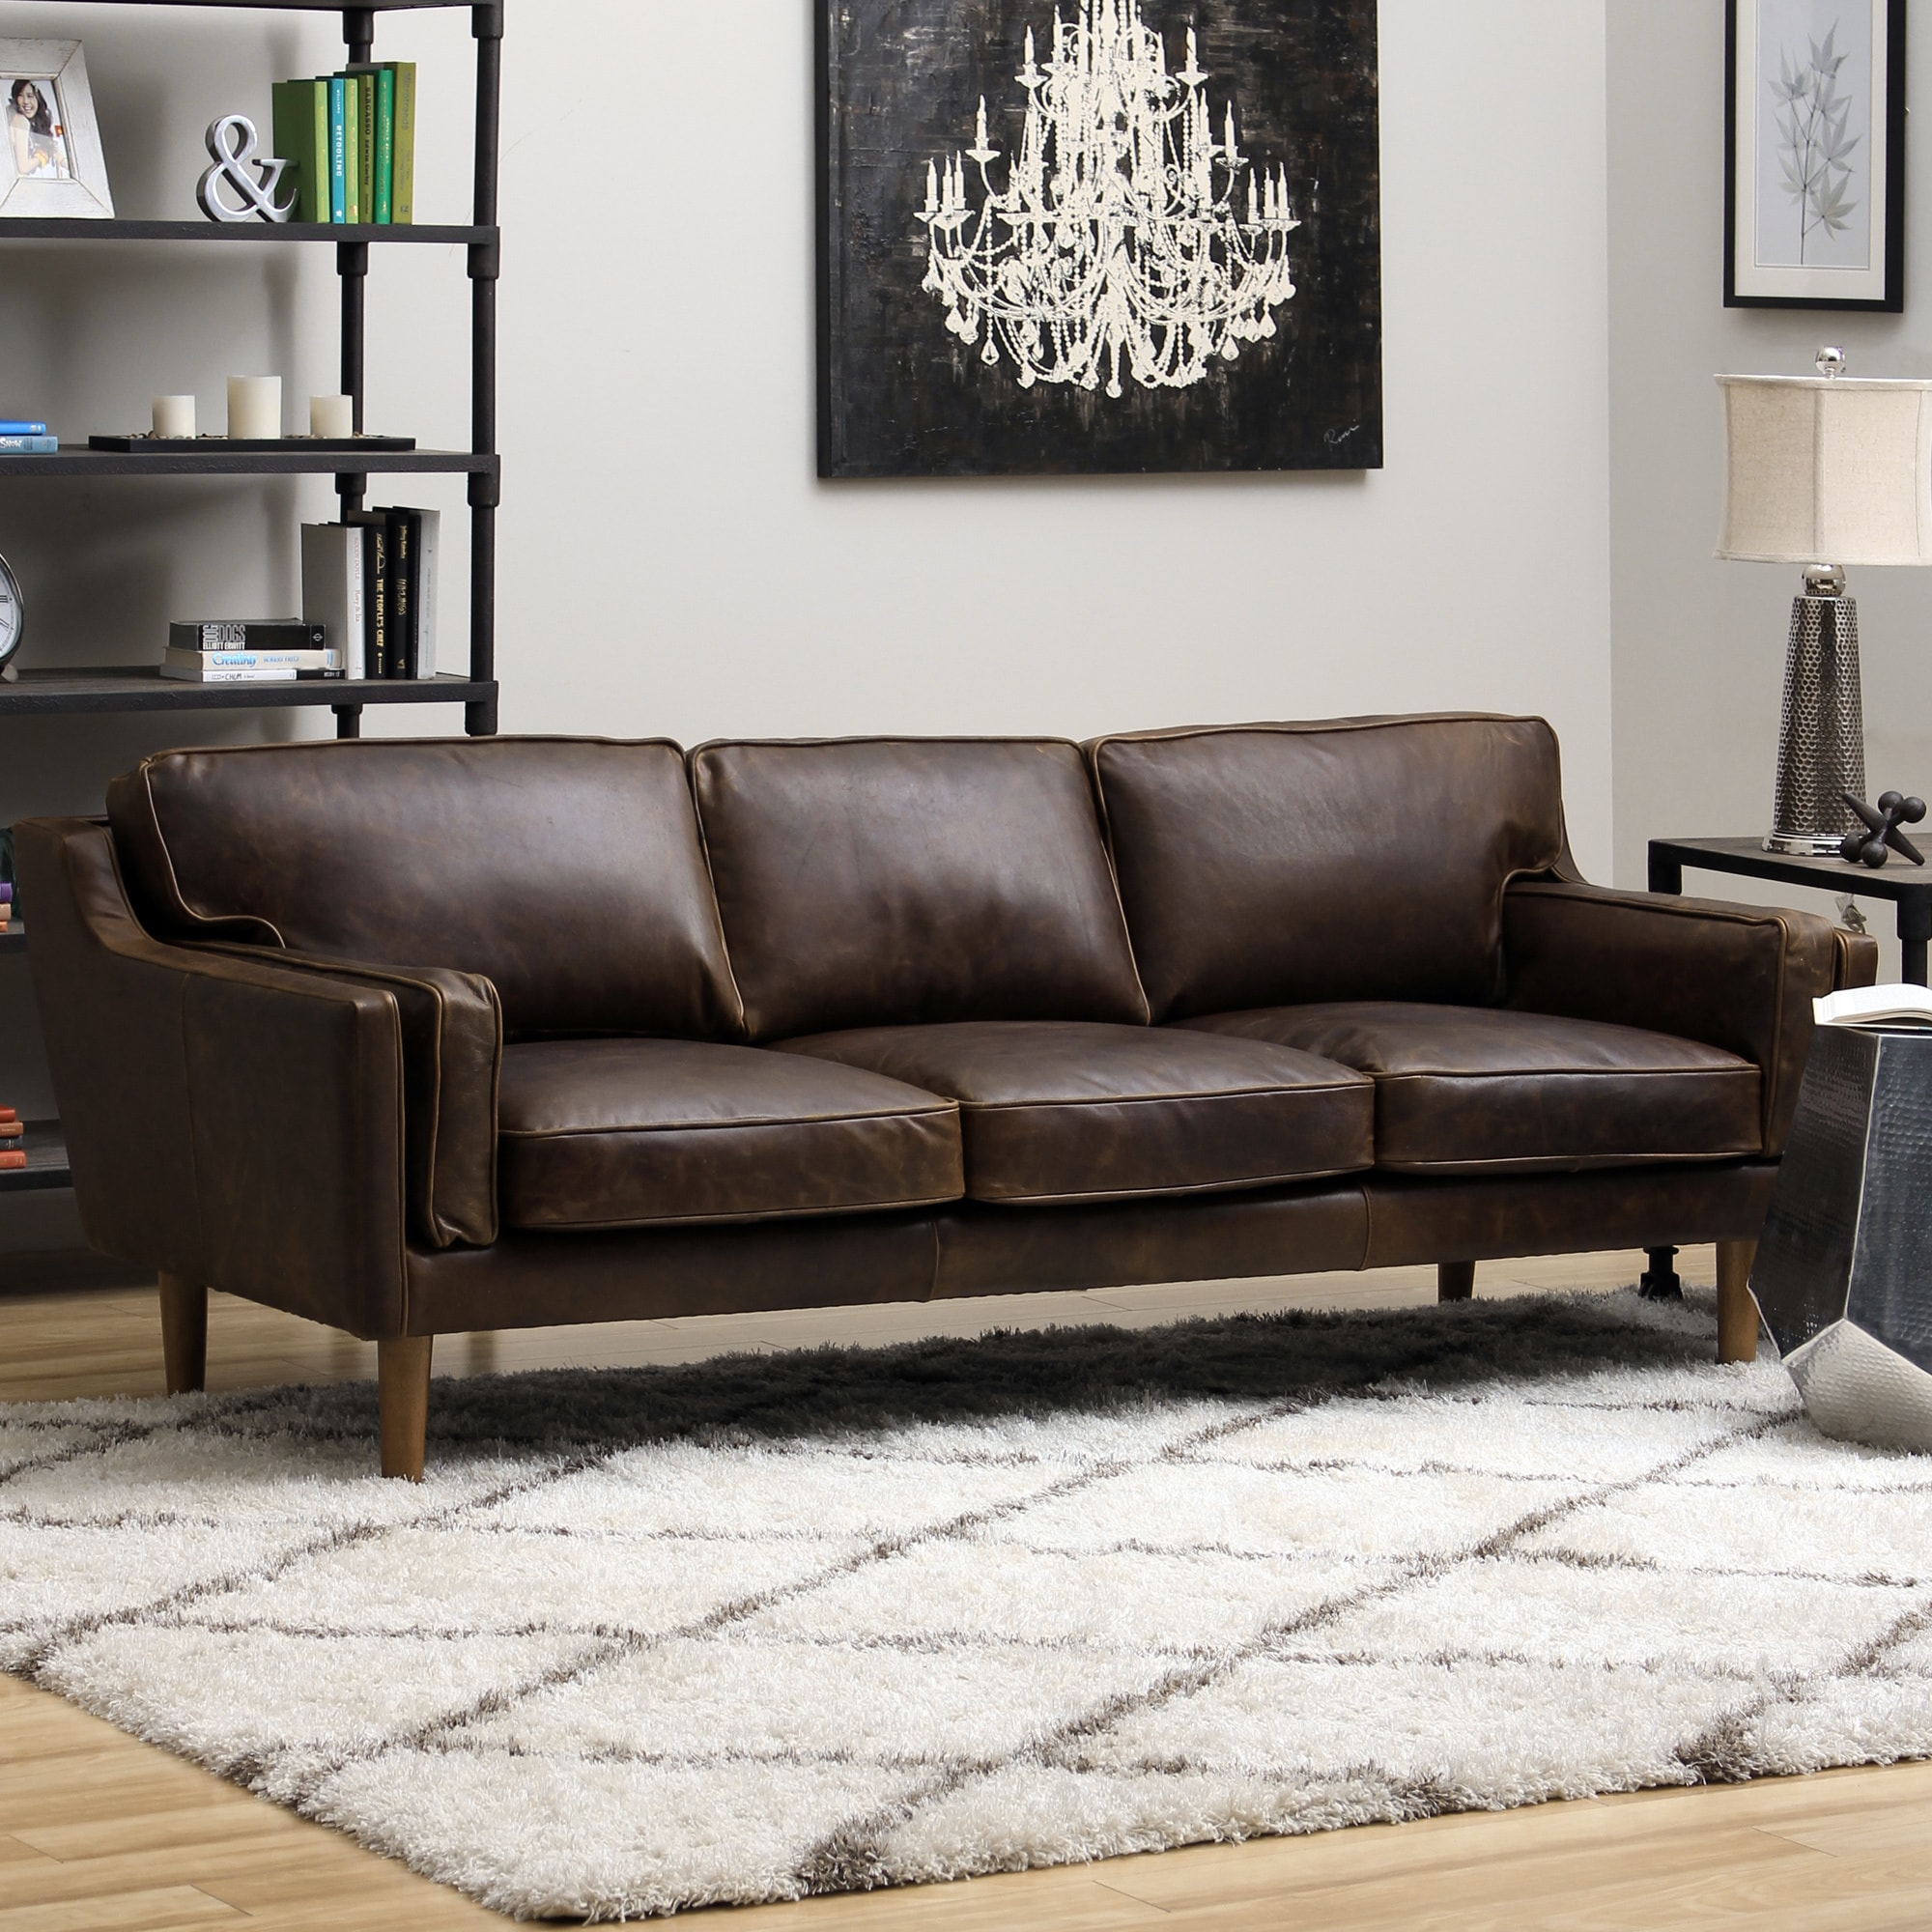 Amazing 1Cheap Beatnik Leather Sofa Columbus Chocolate Cheap Gmtry Best Dining Table And Chair Ideas Images Gmtryco